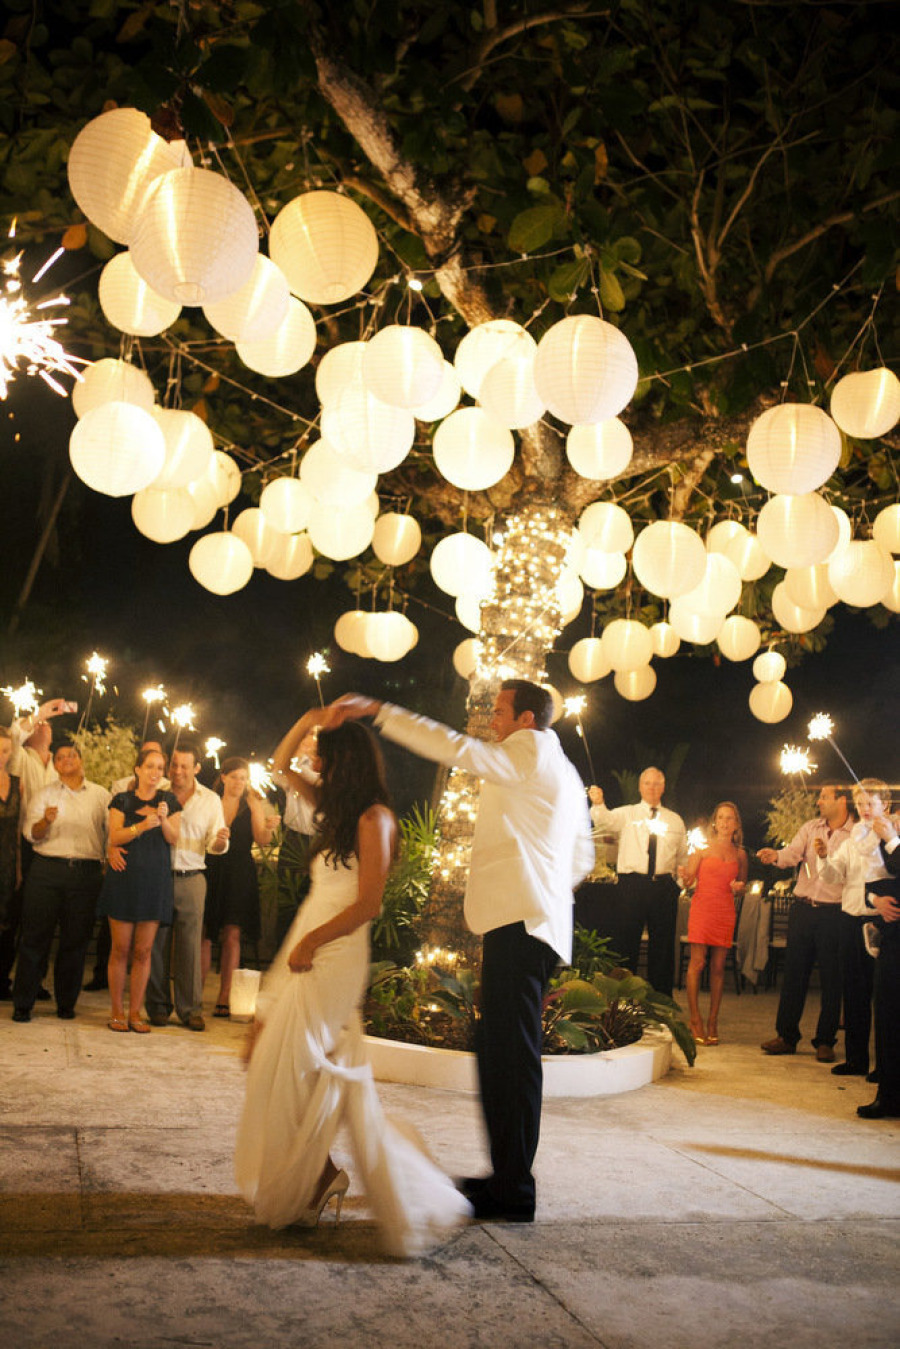 10 outdoor wedding twinkle lights - Decoracion para bodas vintage ...